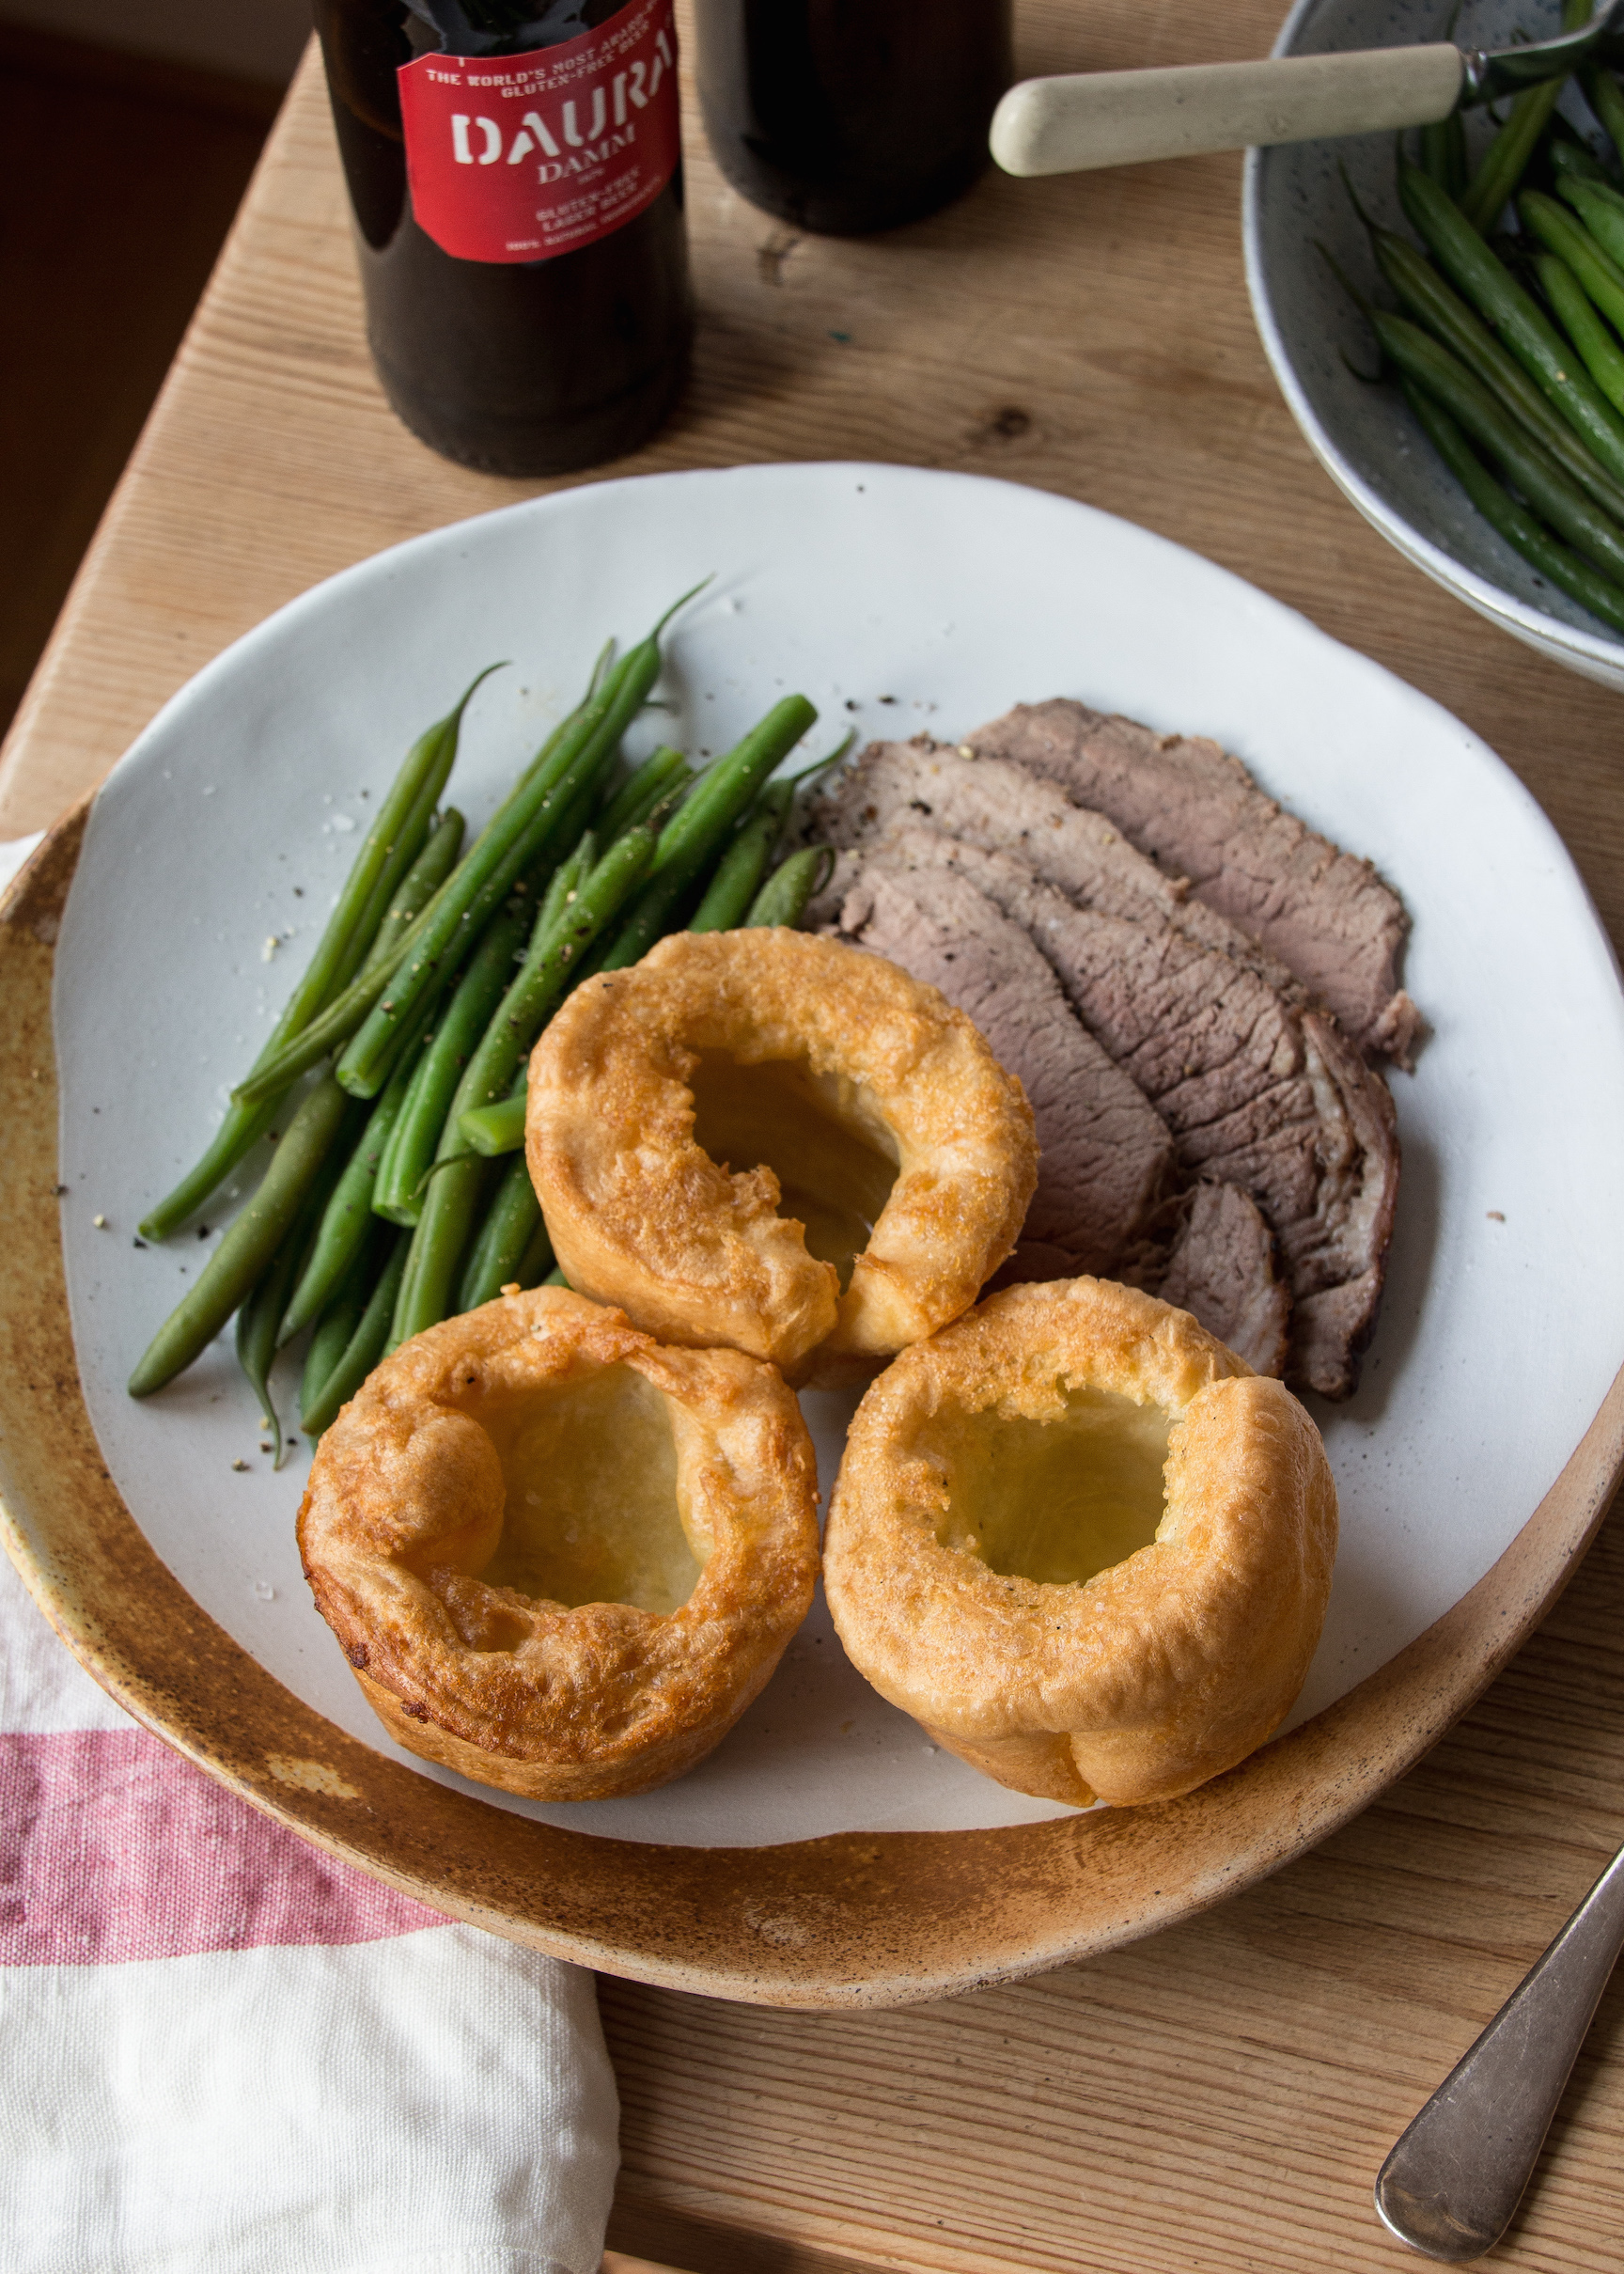 Daura Damm gluten free Yorkshire puddings